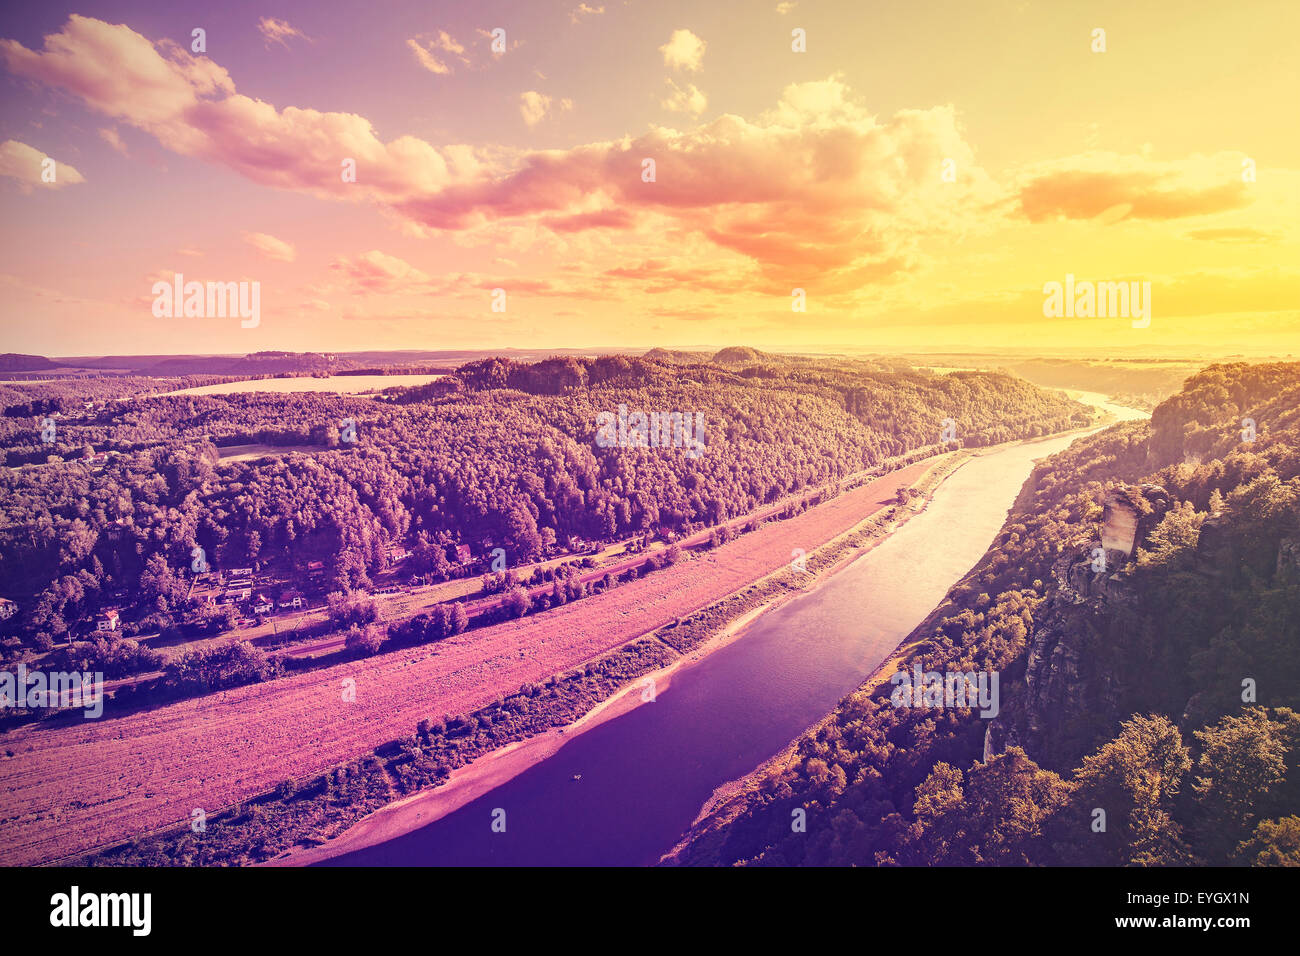 Vintage toned photo of Elbe river at sunset, Germany. - Stock Image